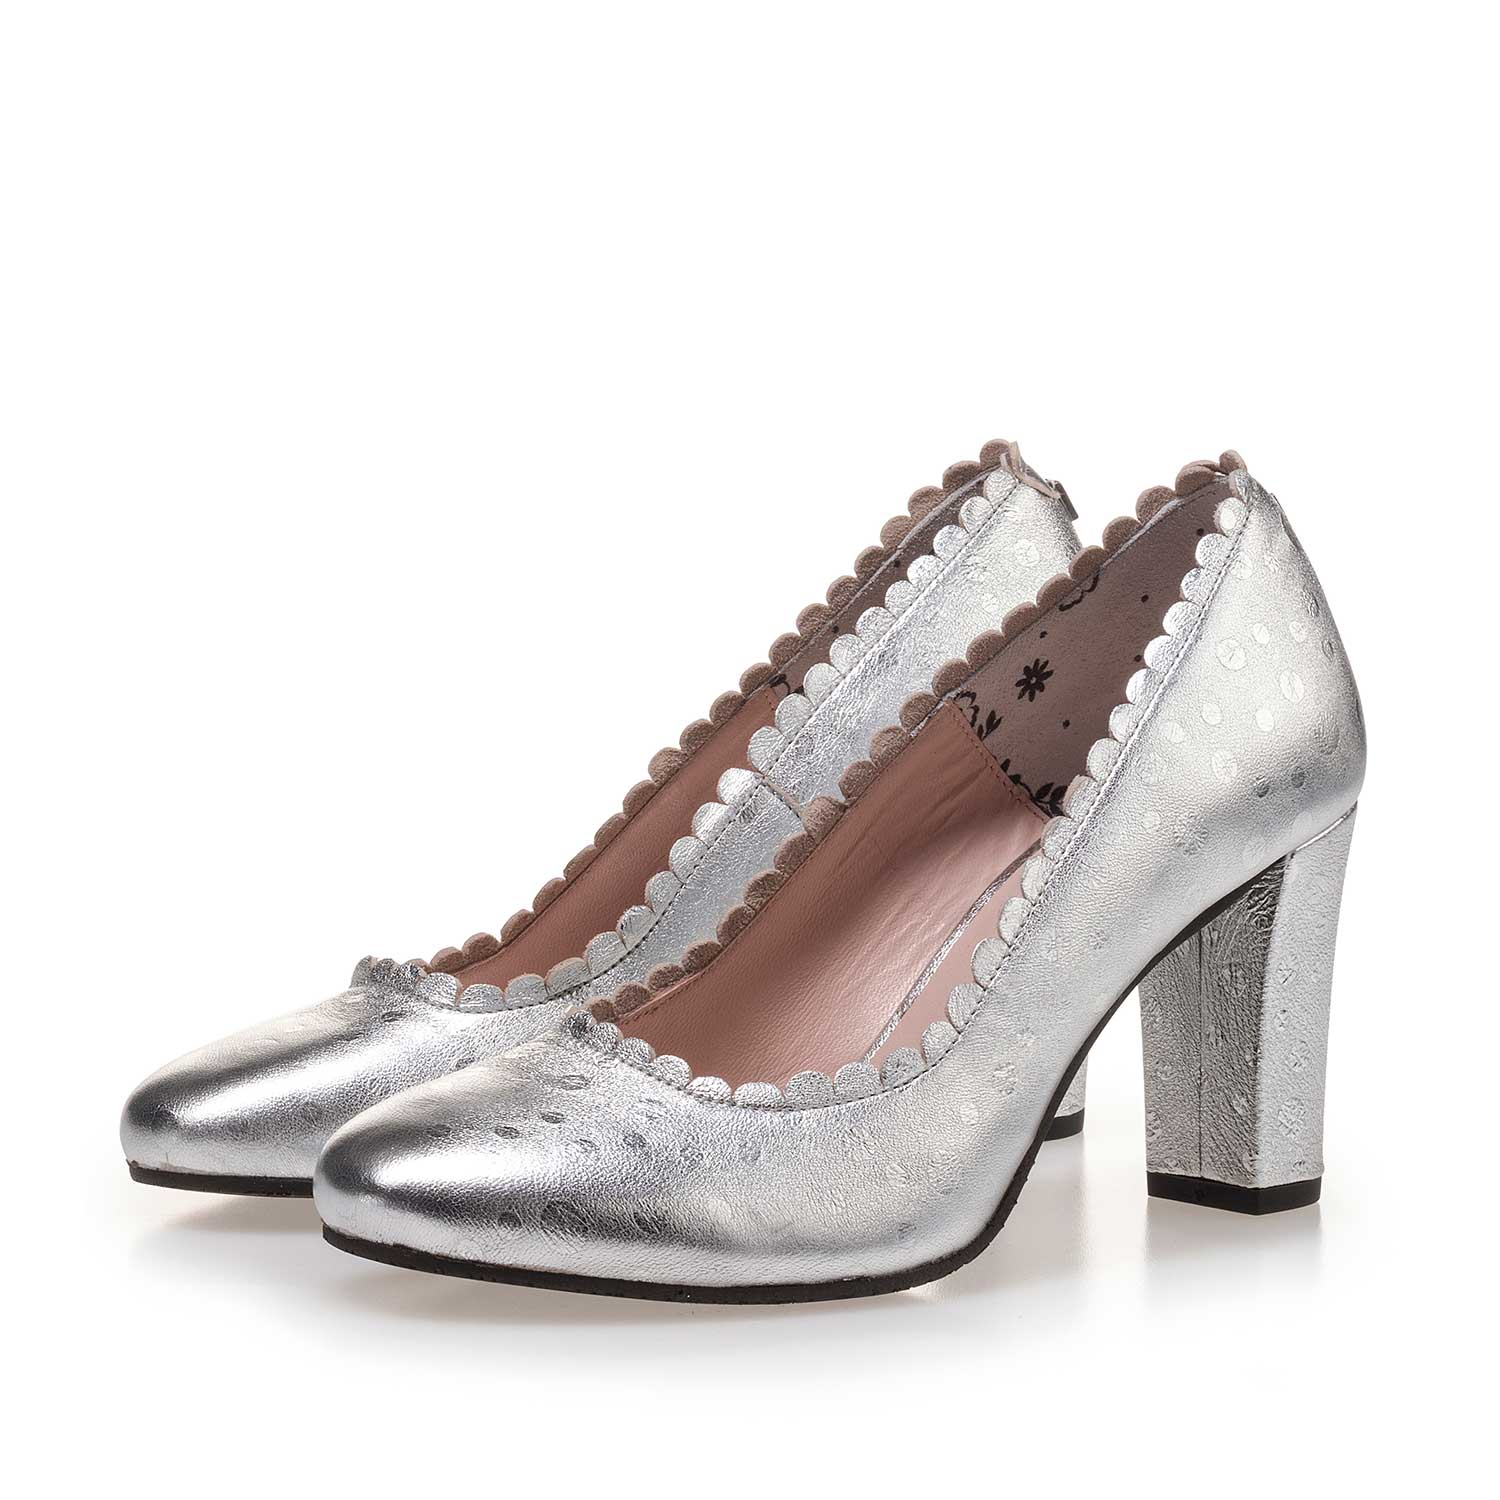 85249/02 - Silver-coloured patterned leather pumps